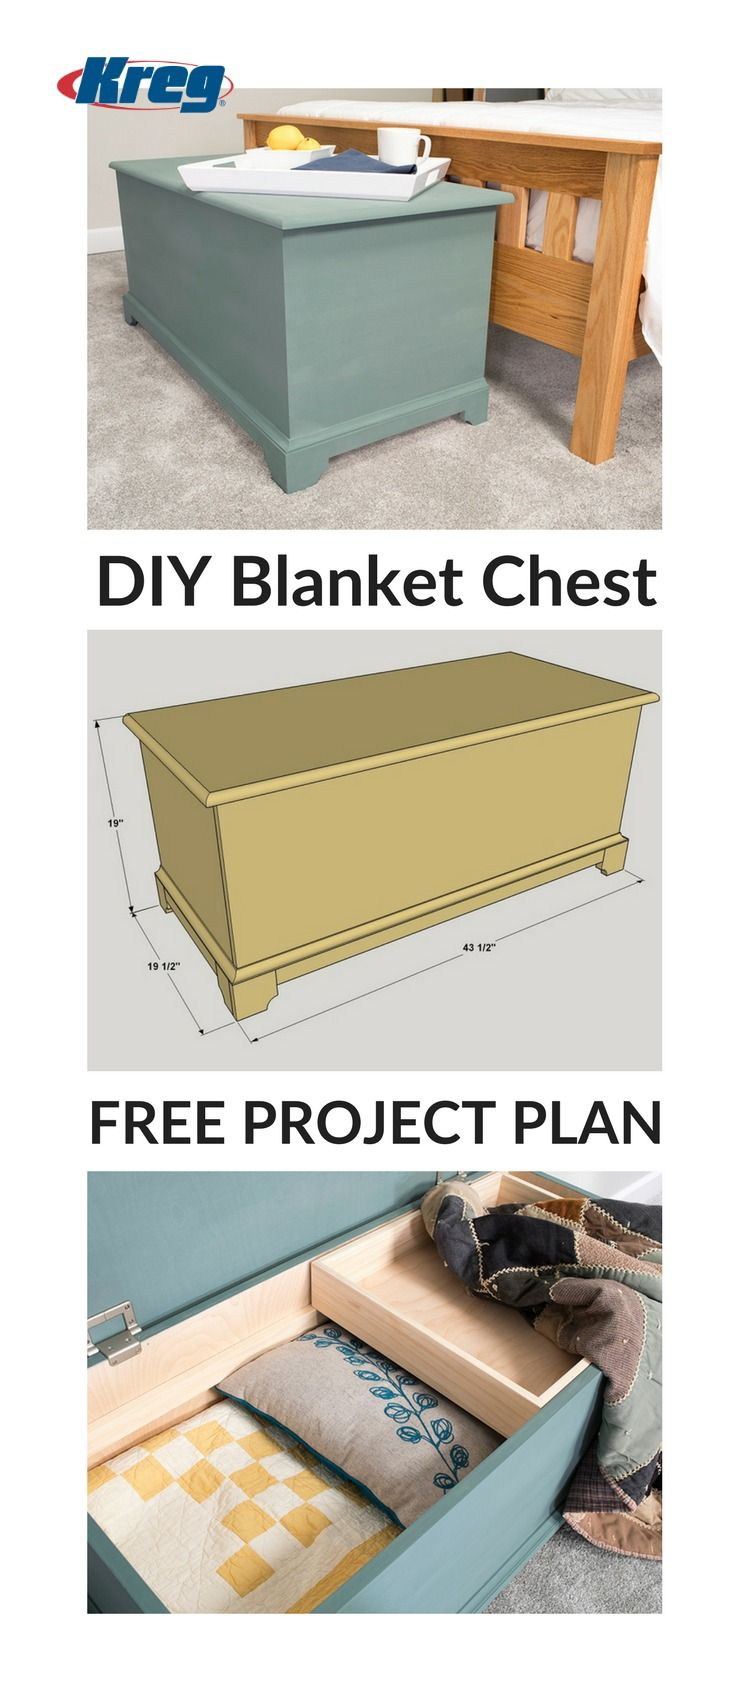 How To Build A Classic Blanket Chest Chest Woodworking Plans Easy Woodworking Projects Woodworking Projects Plans